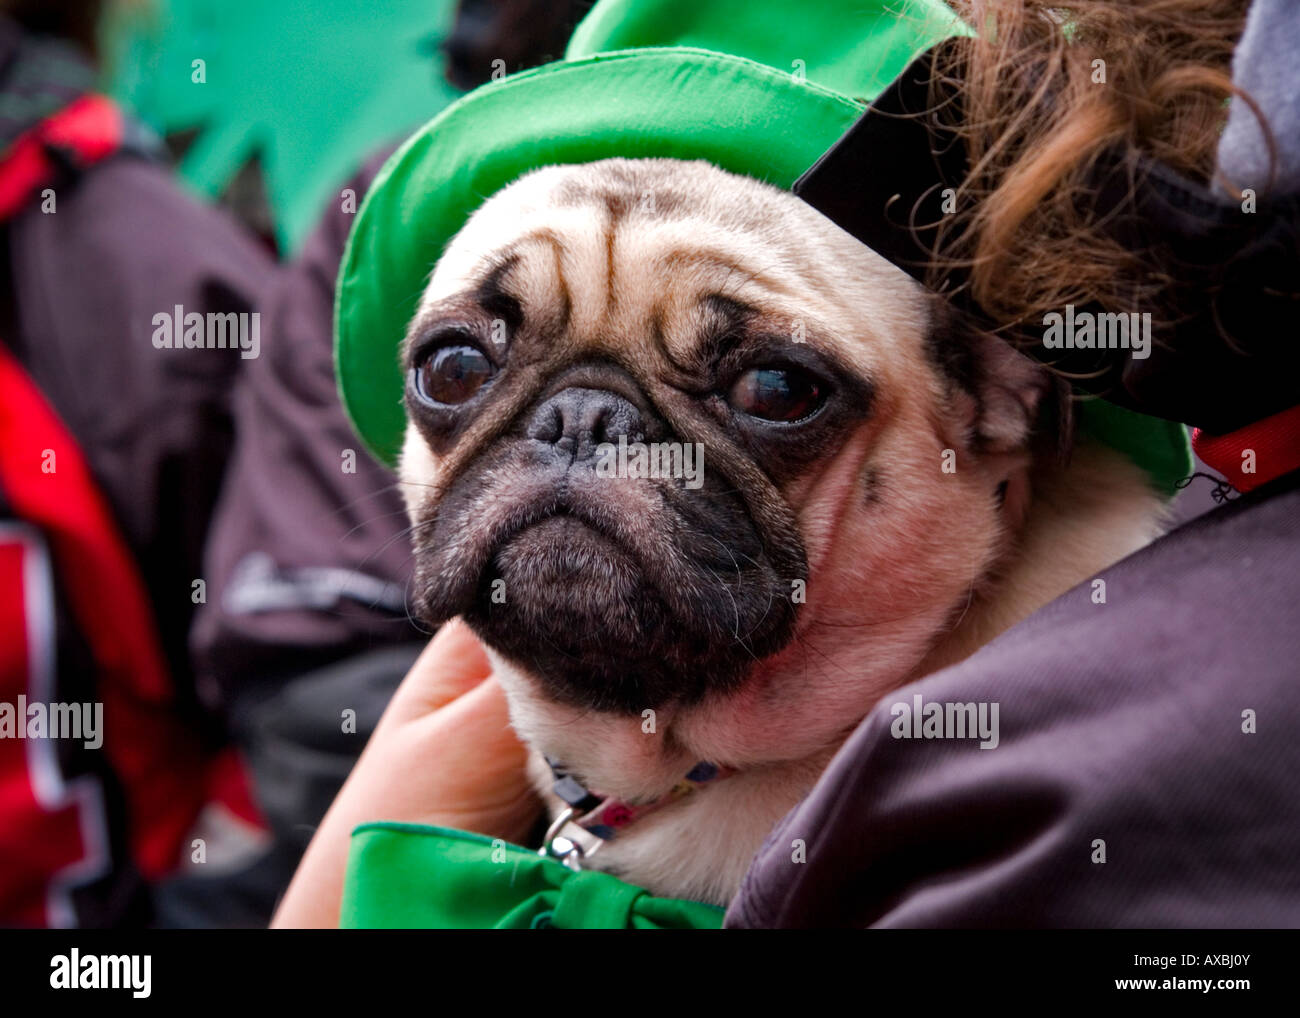 A pug dog dressed up for the St Patrick's Day Parade on March 16, 2008 in Montreal, Quebec, Canada. - Stock Image